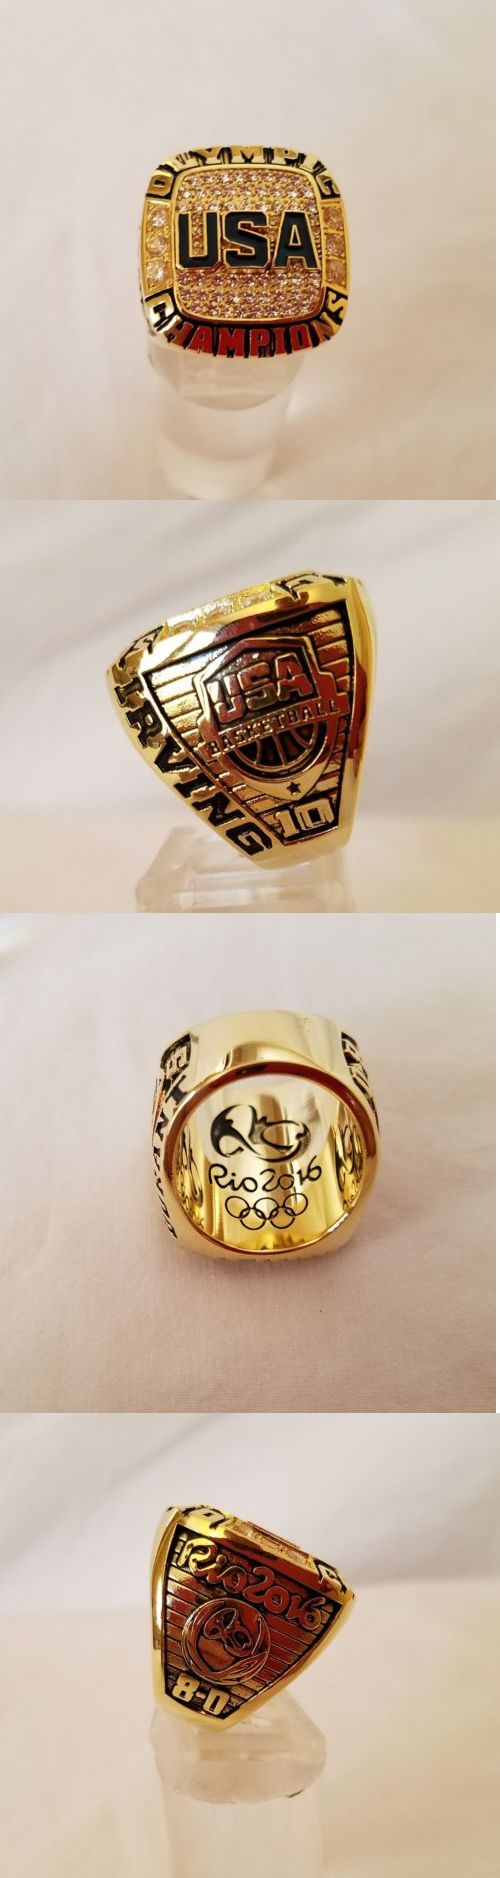 Olympics 27291: (Close Out) 2016 Olympic Mens Basketball Championship Ring (Kyrie Irving ) -> BUY IT NOW ONLY: $39.99 on eBay!